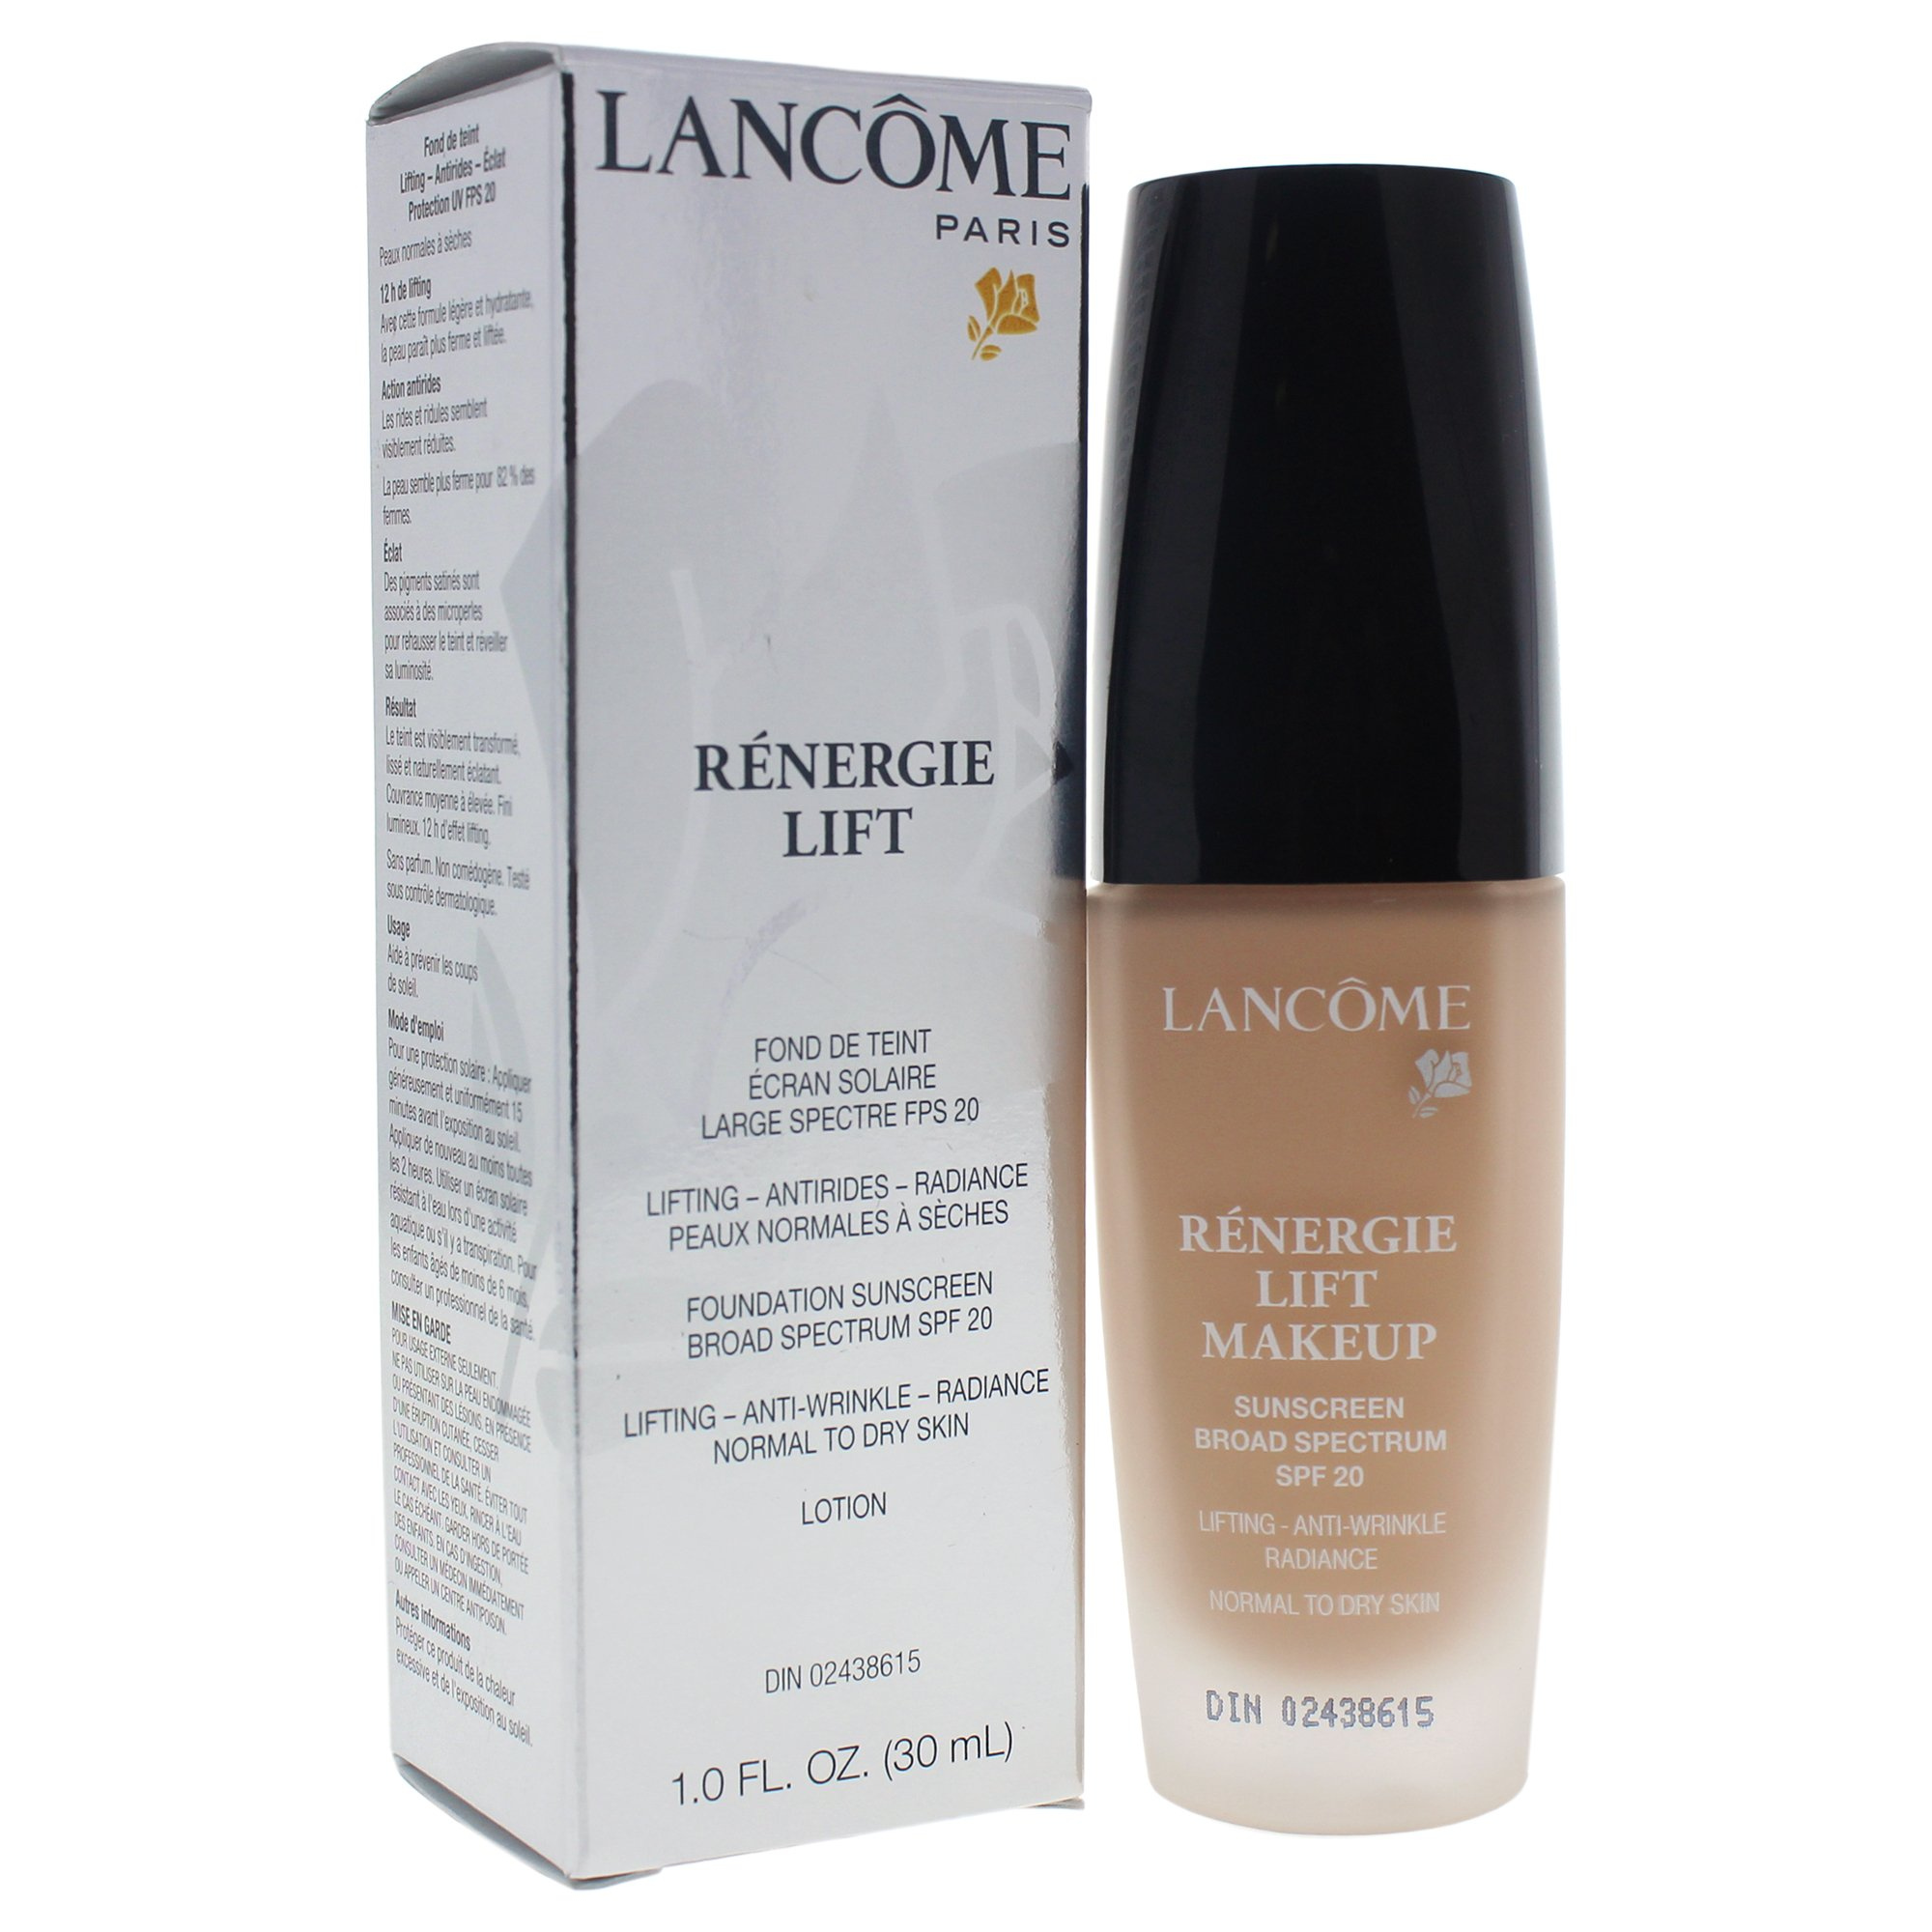 Lancome Renergie Lift Makeup Foundation SPF 20, 240 Clair 10 (C)